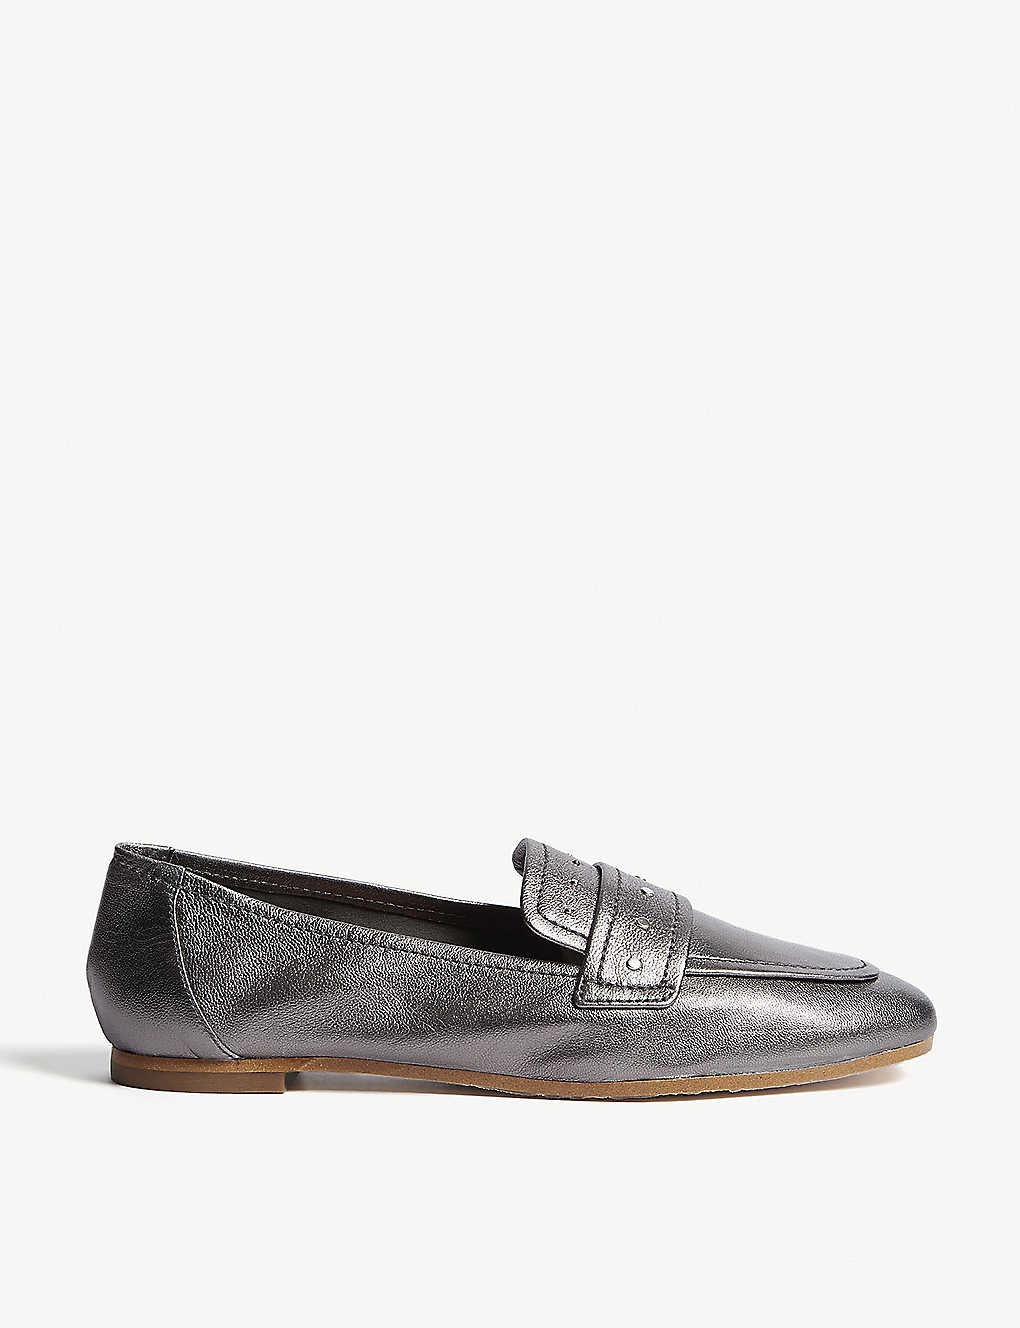 a8216bfb922 REISS - Elba metallic leather loafers